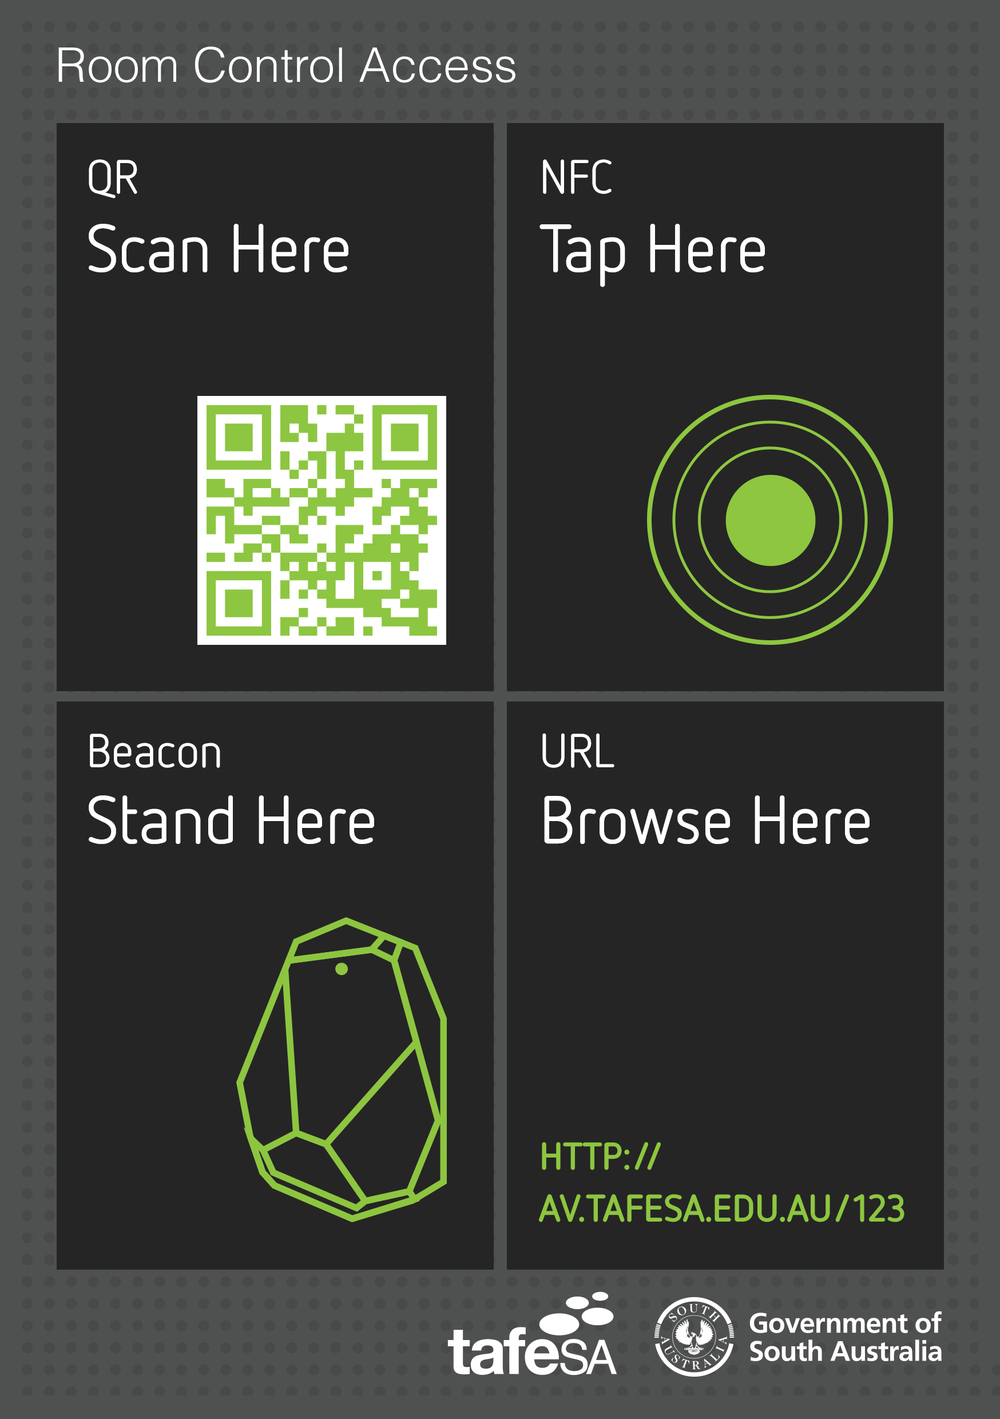 QR Codes, NFC chips, iBeacon and URLs can be used to launch the control interface on your customer's mobile device, tablet or laptop.